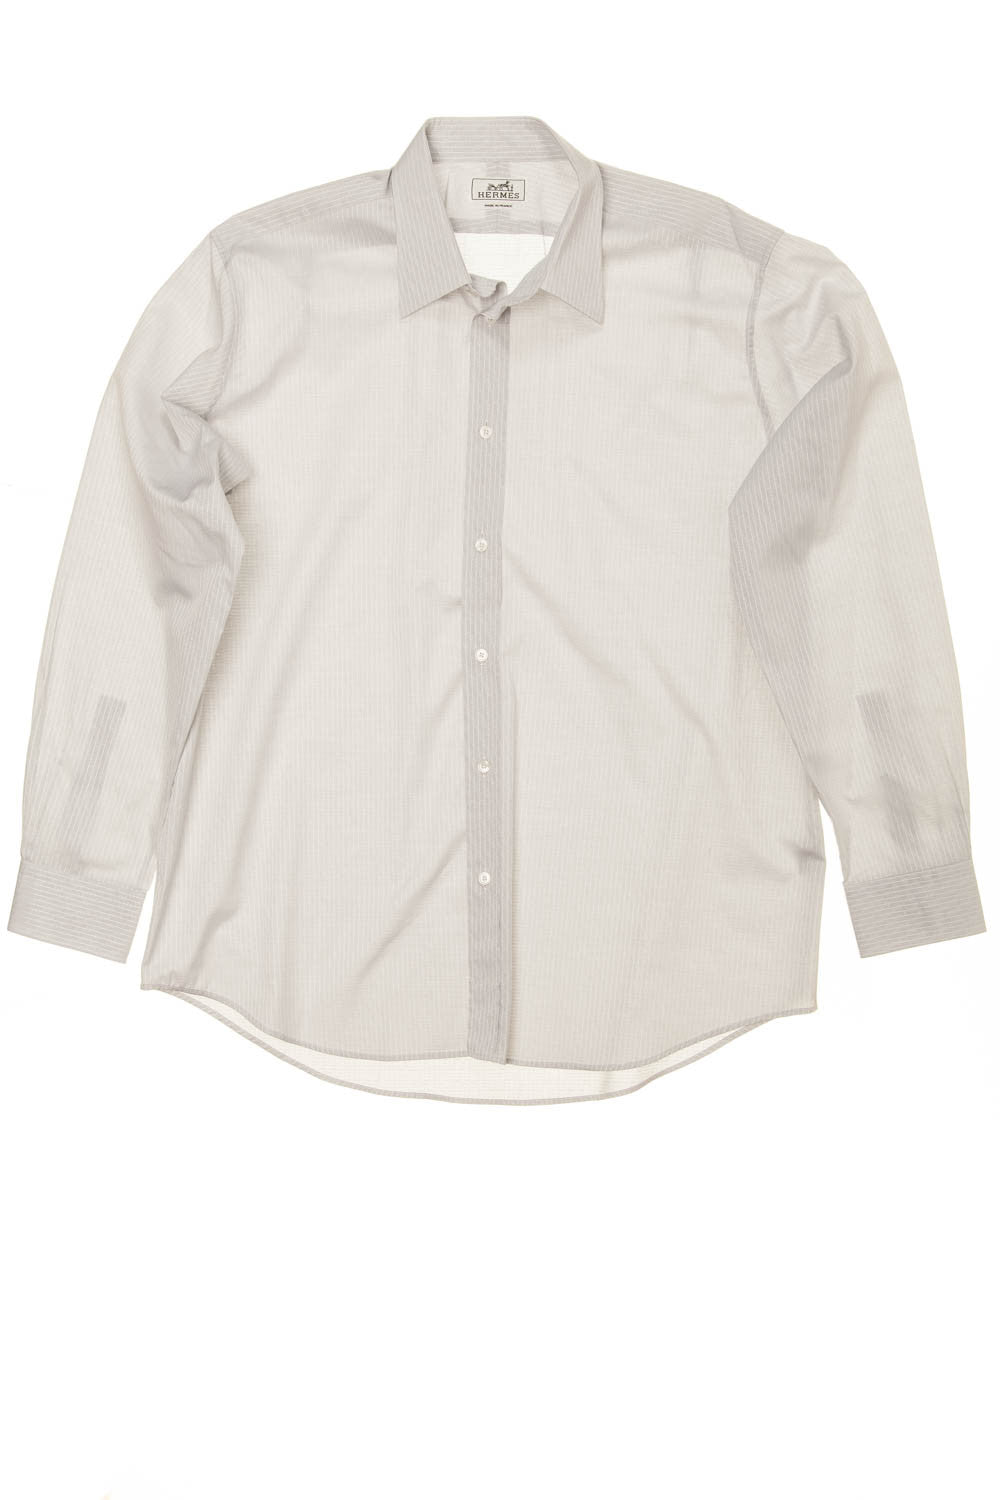 Hermes - Grey Button Up Dress Shirt - IT 43